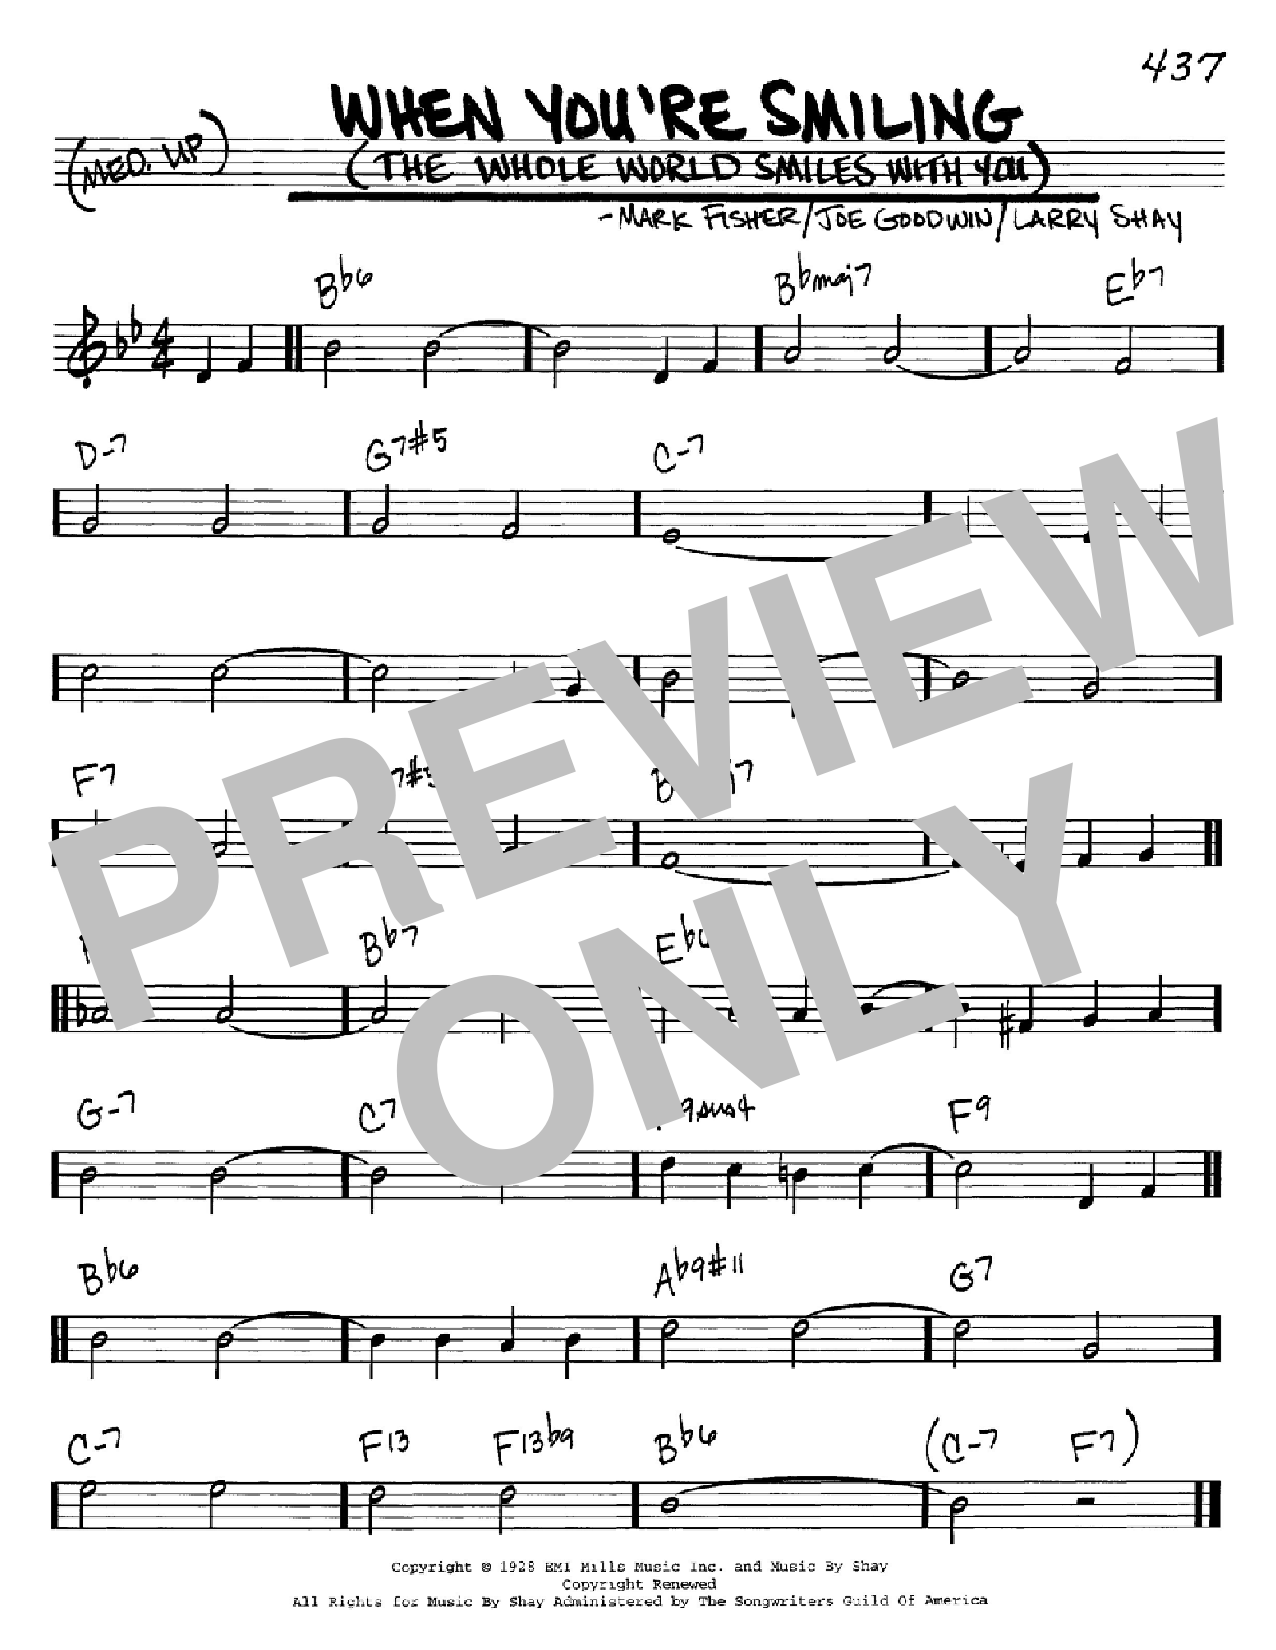 When You're Smiling (The Whole World Smiles With You) Sheet Music